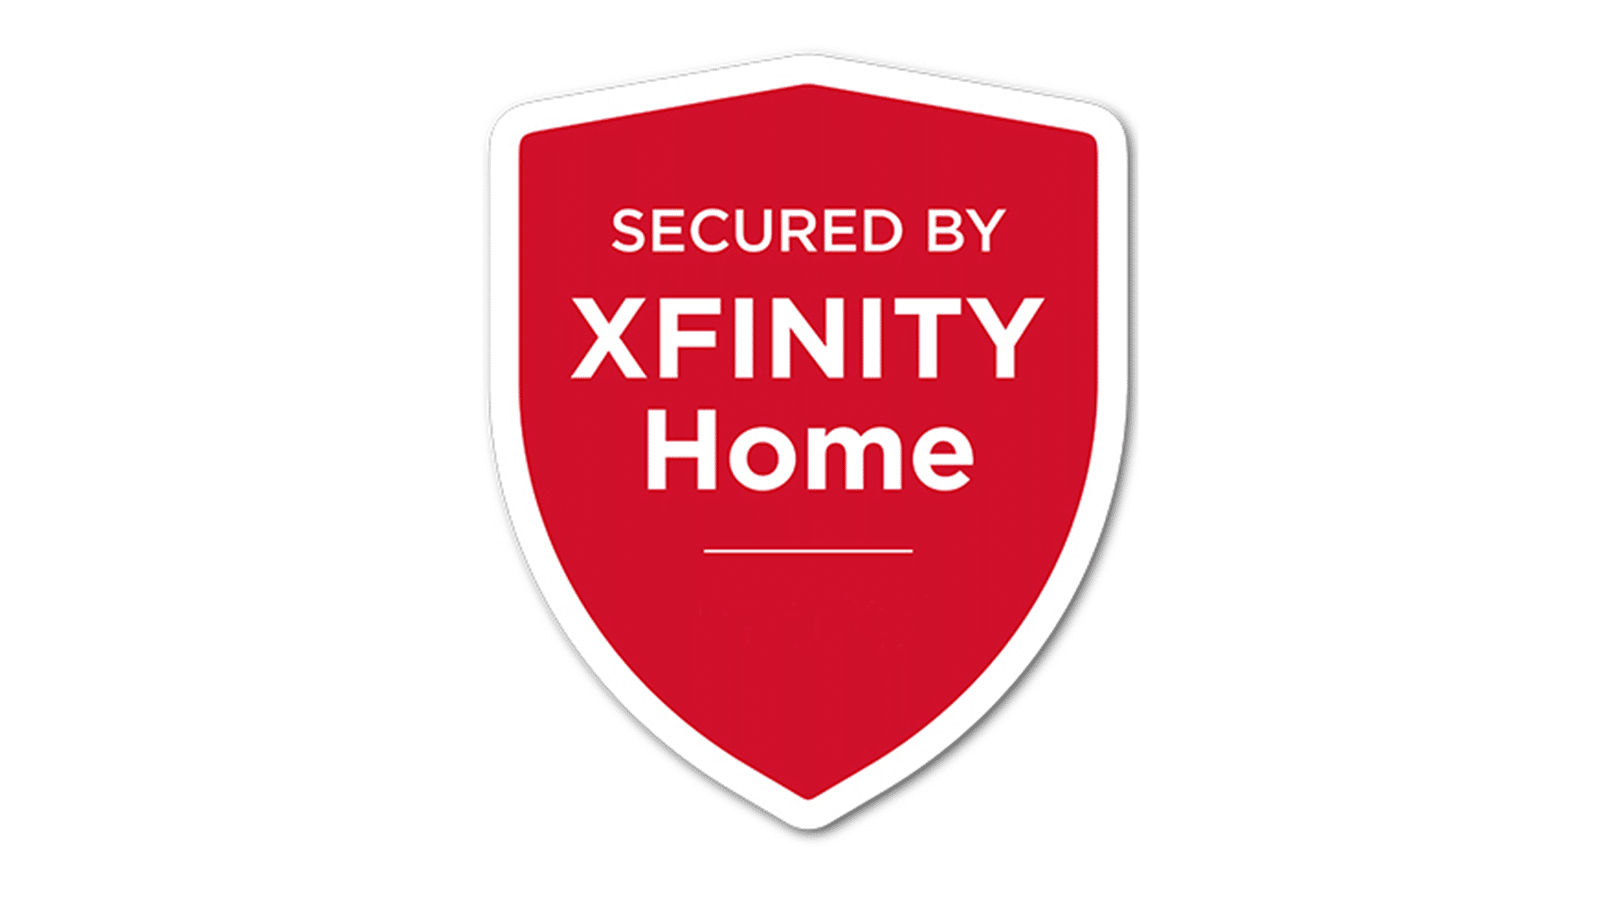 Xfinity yard sign - xfinity home security